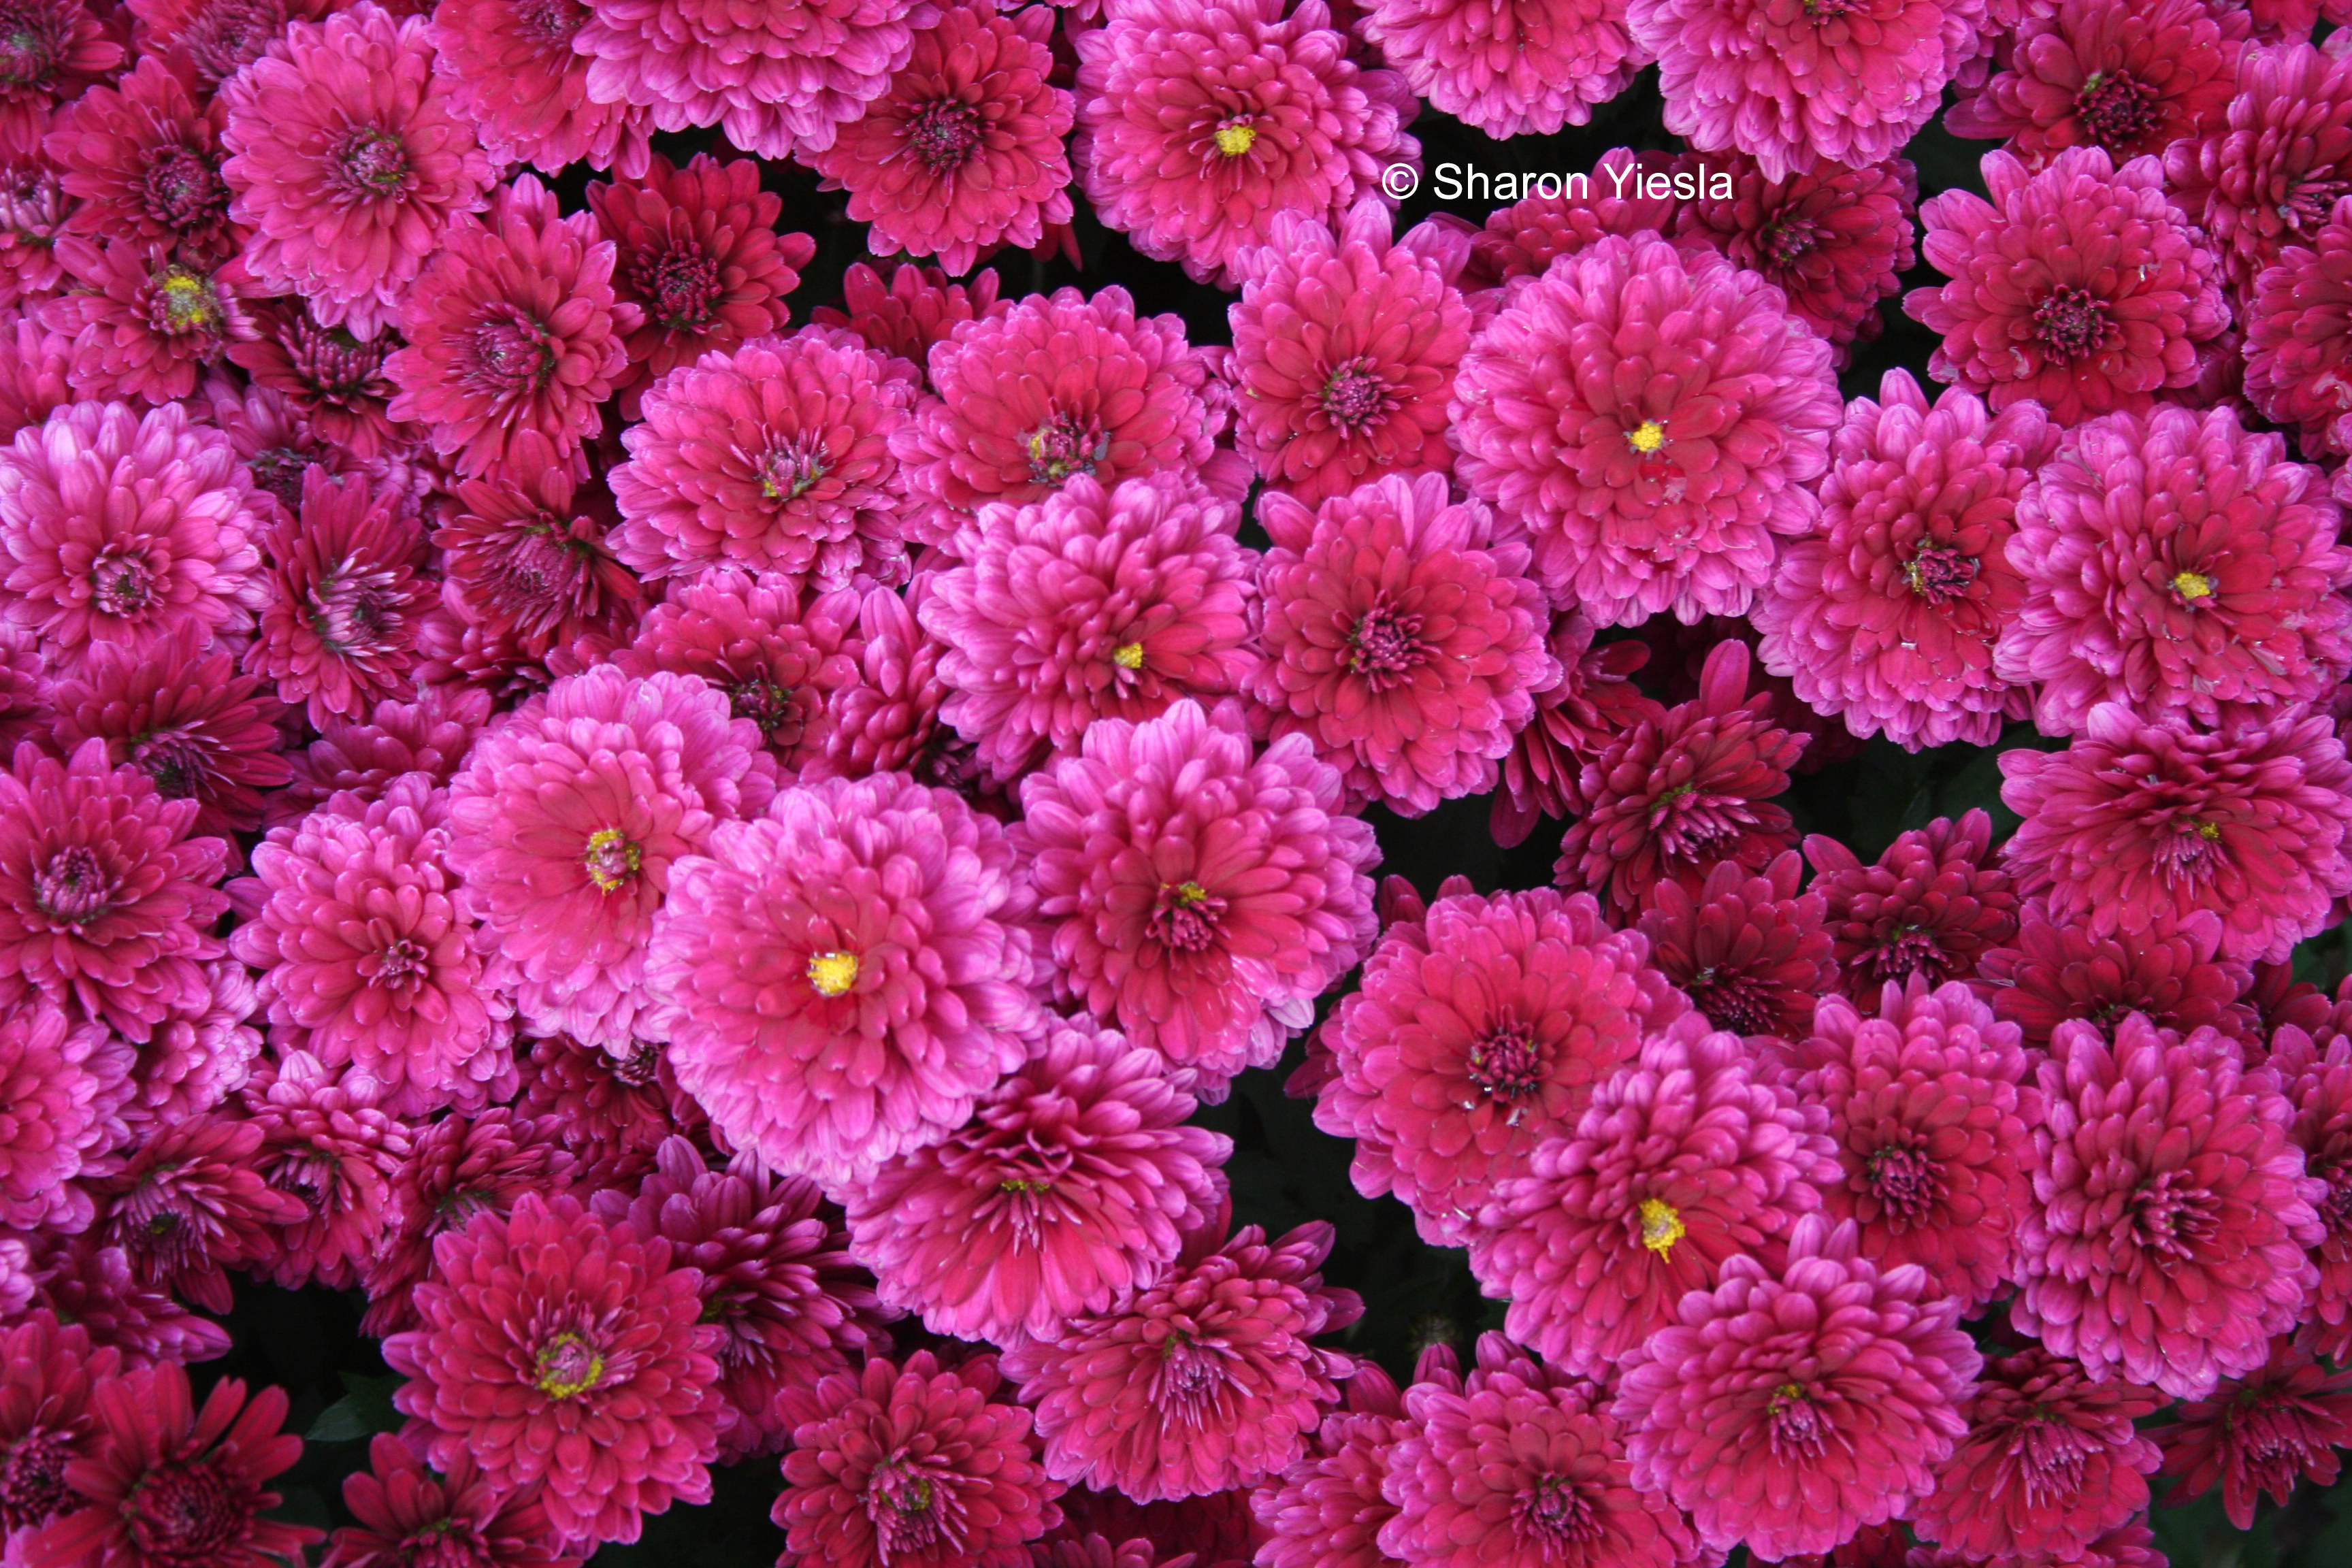 Bright pink mums for autumn